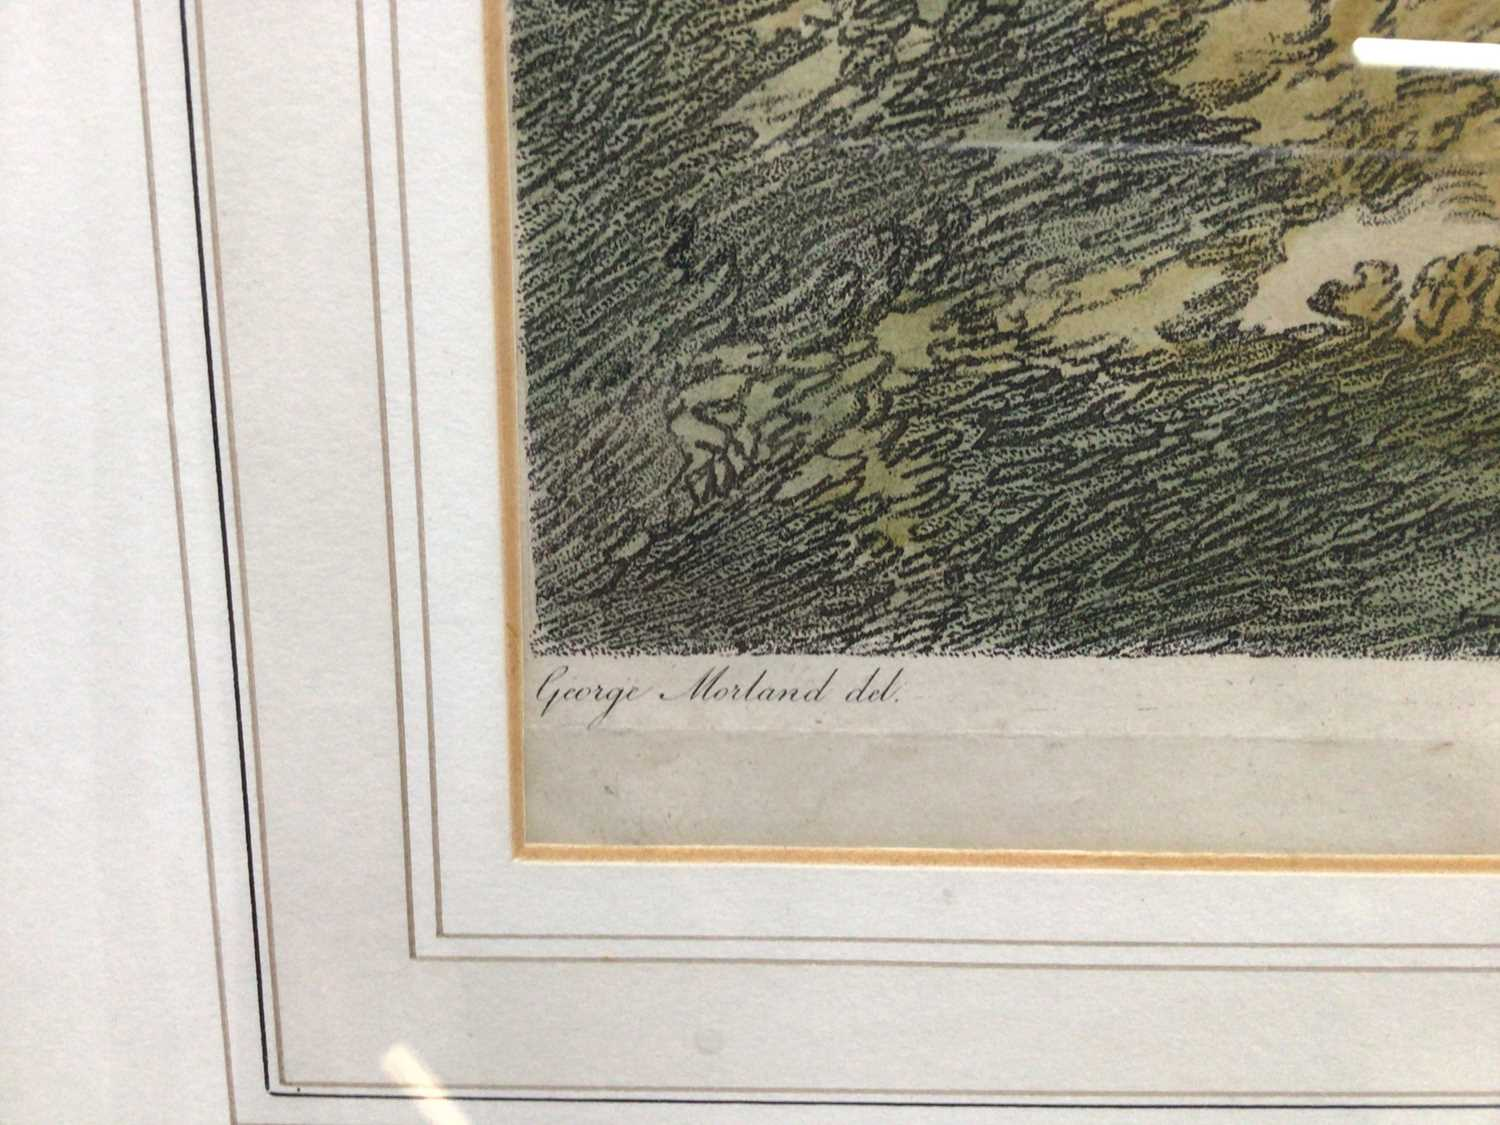 After George Morland engraving - Image 5 of 7